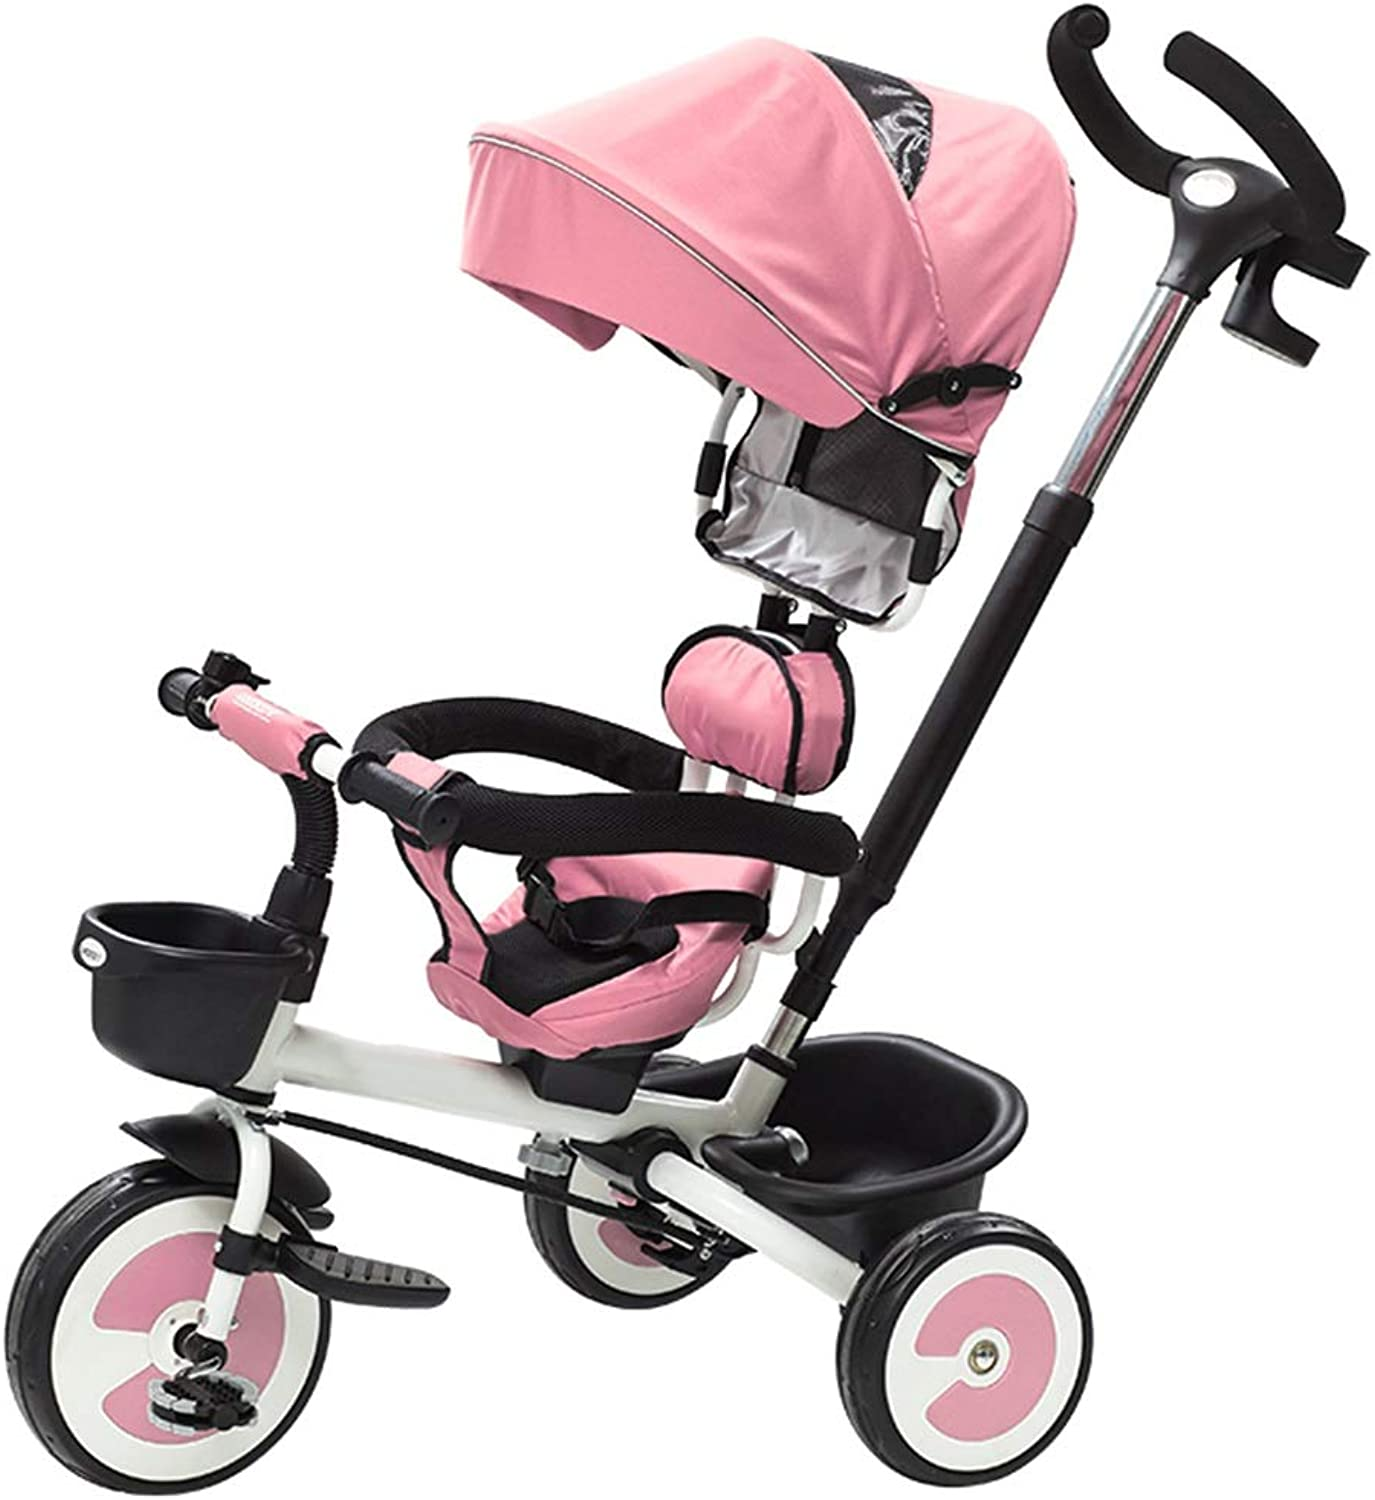 YUMEIGE Kids' Tricycles Kids Tricycle 15 Years Old Birthday Gift Tricycle with Awning Load Weight 25 kg Kids Strollers Toddler Trike(blueee, red,Pink) Available